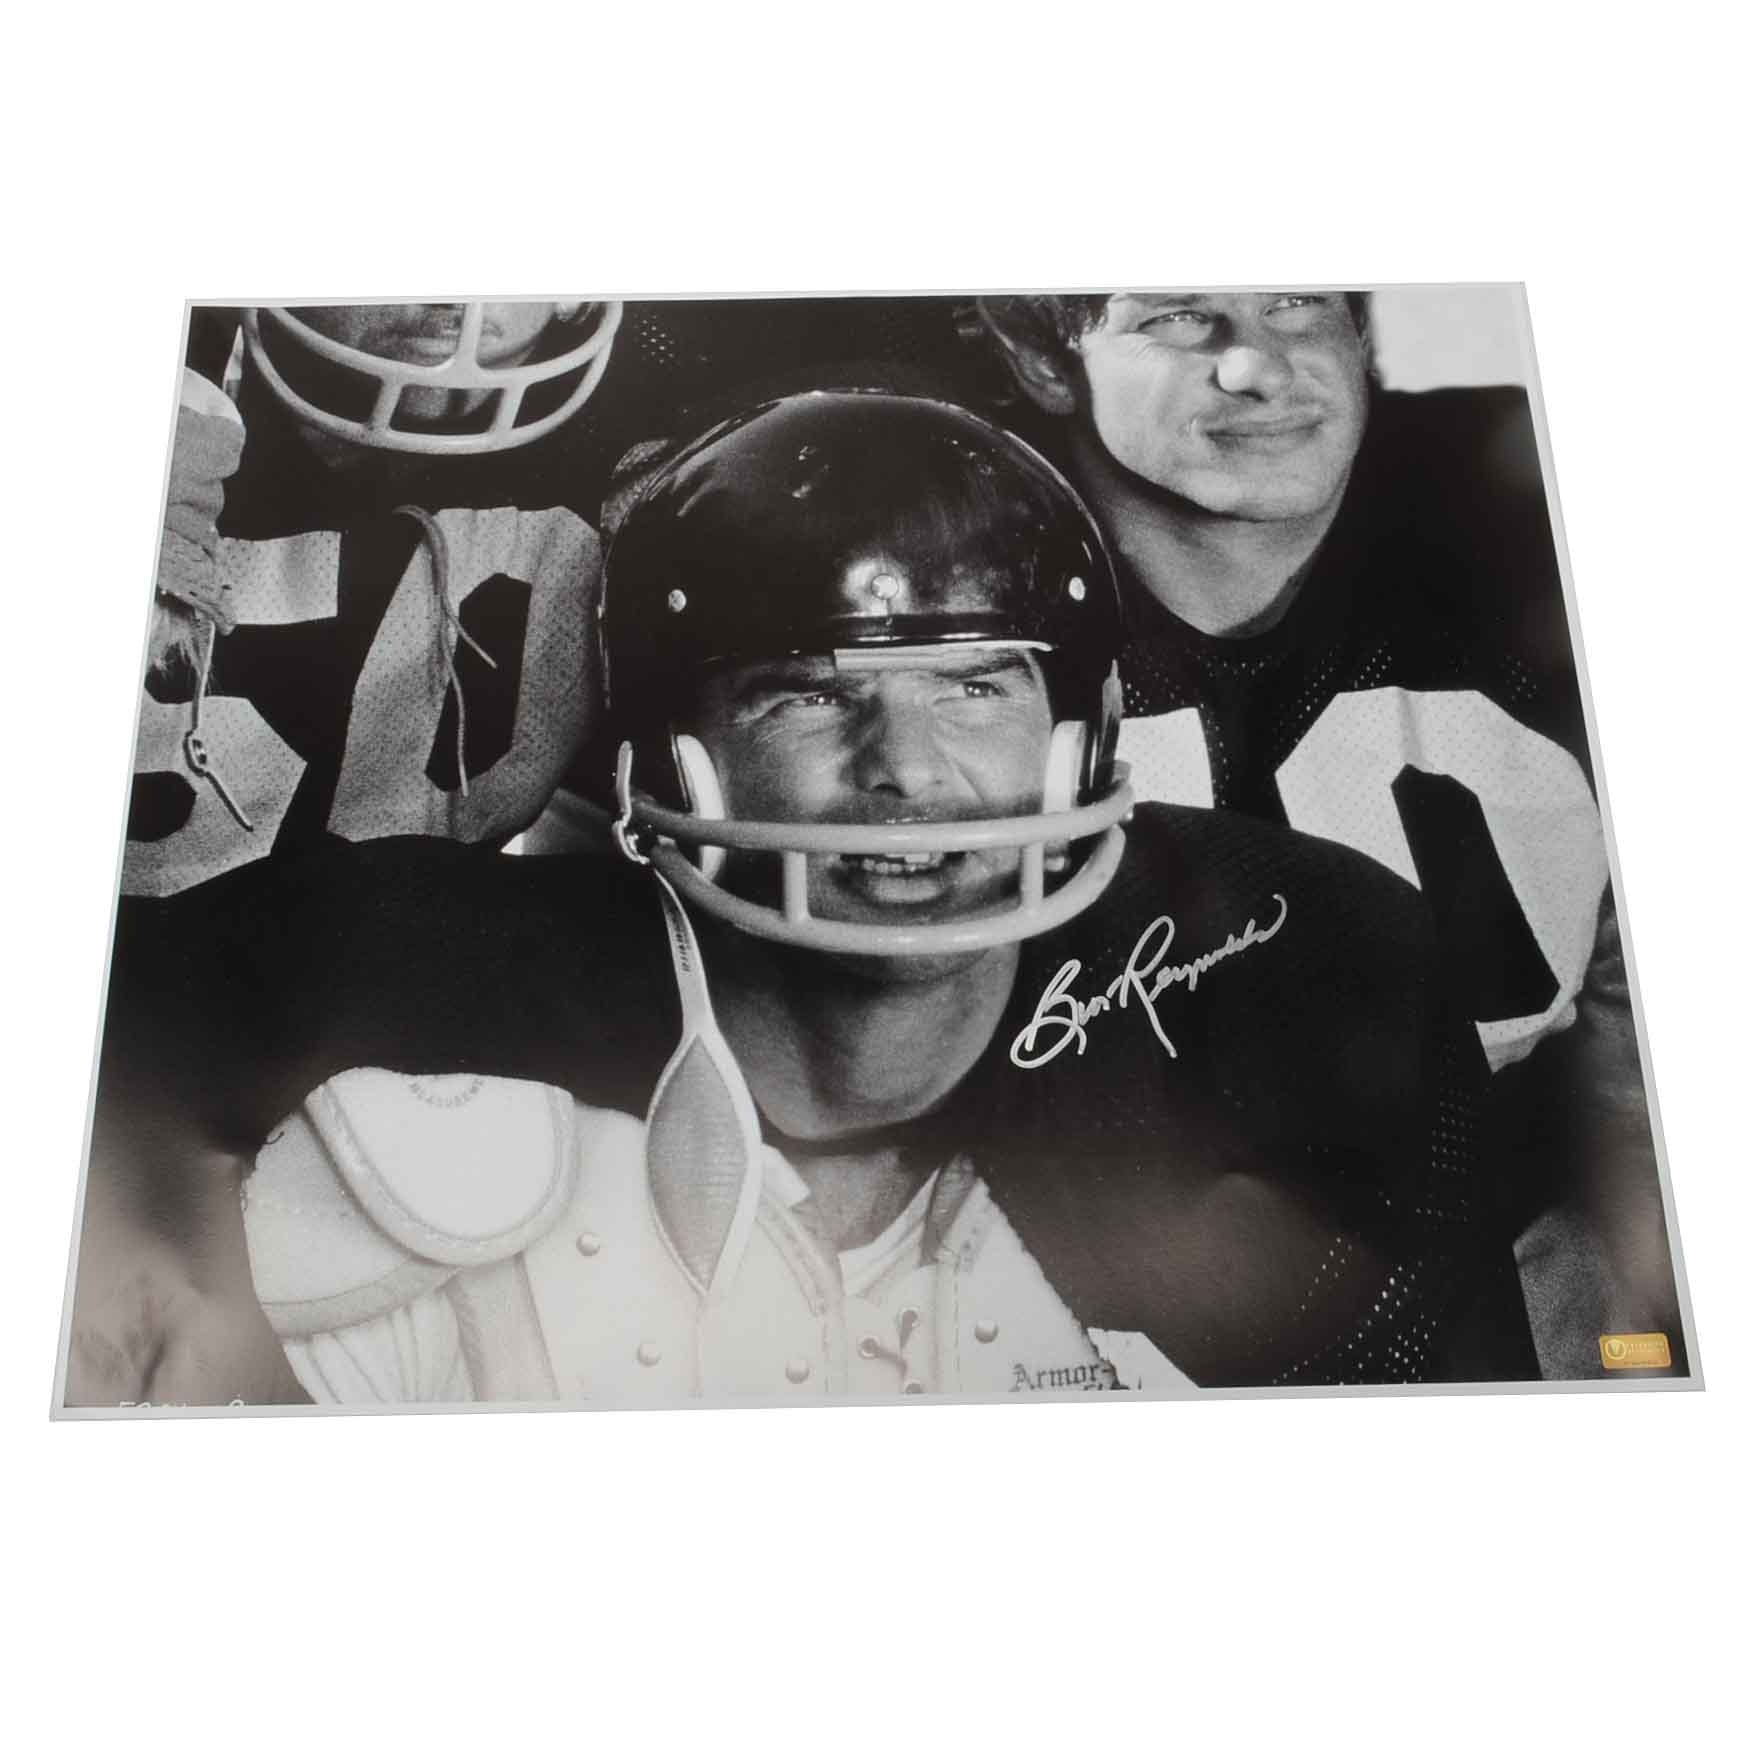 "Burt Reynolds Signed ""Longest Yard"" Photo  COA"